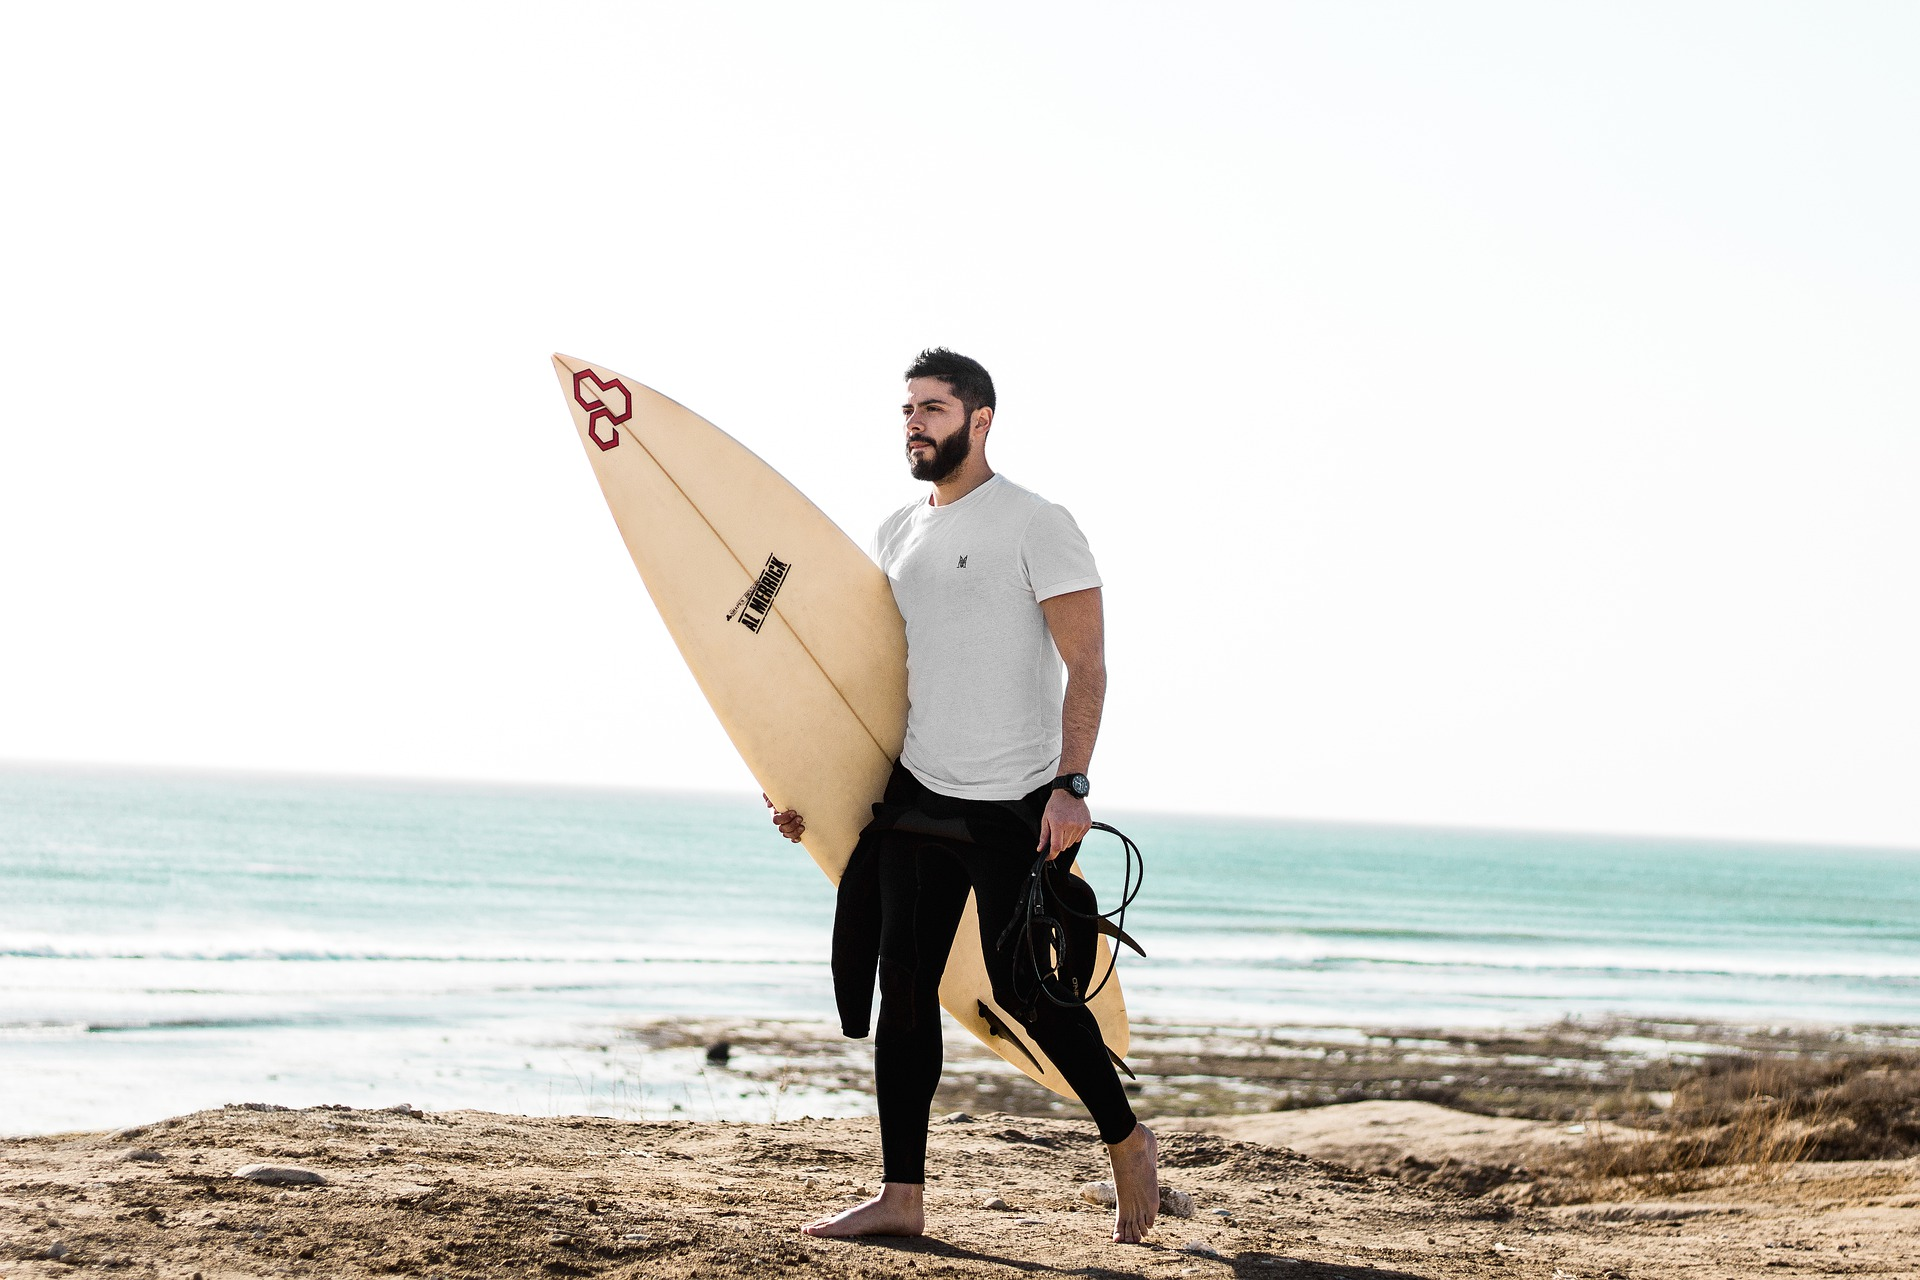 Points To Keep In Mind While Buying A Surfing Board